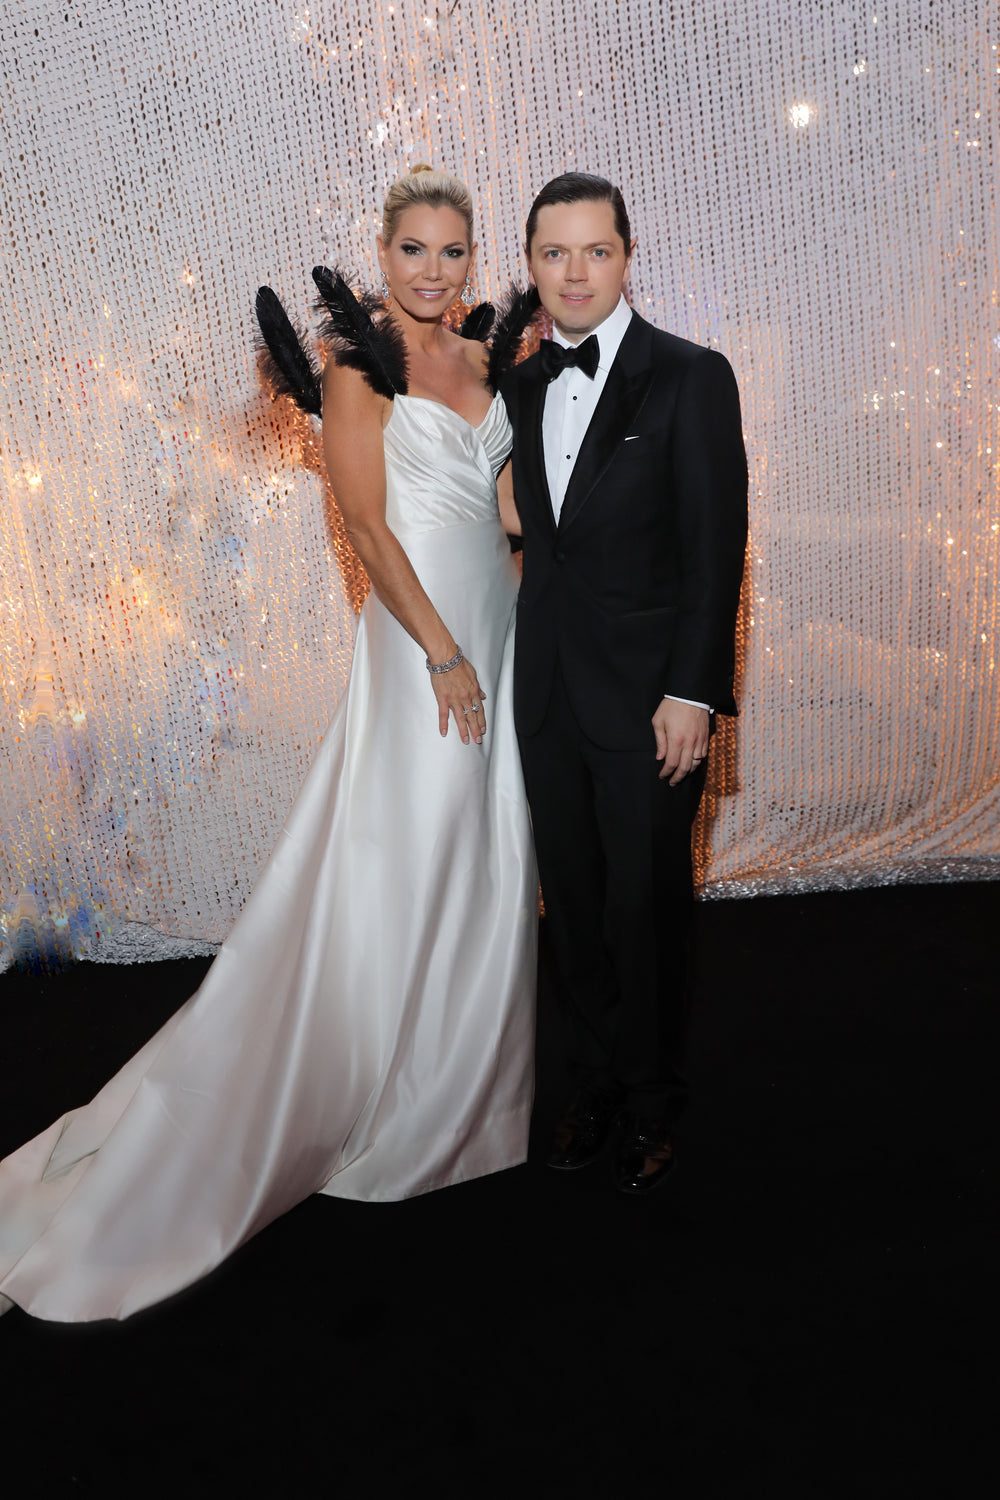 Houston Ballet Ball, Custom Gown, Miles David, David Peck, Van Cleef & Arpels